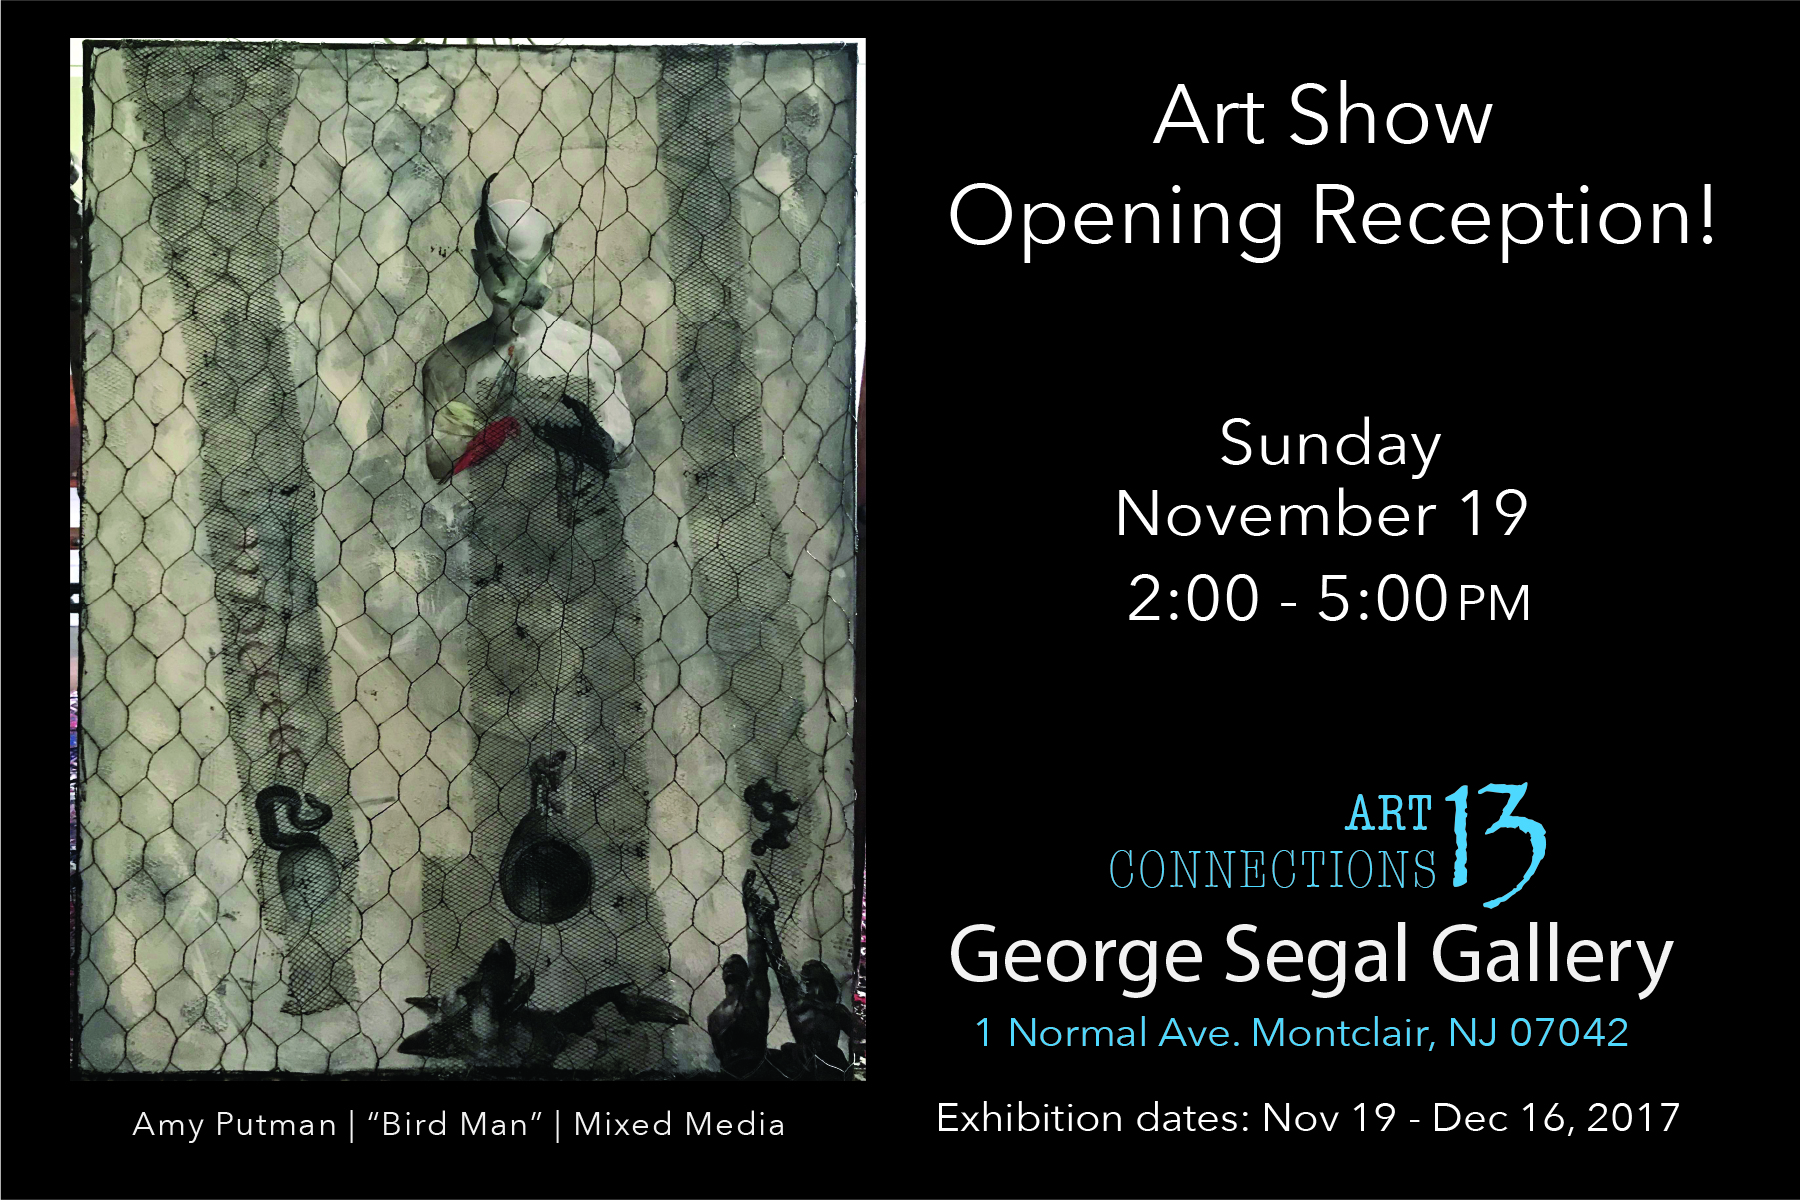 invite 2 george segal .JPG